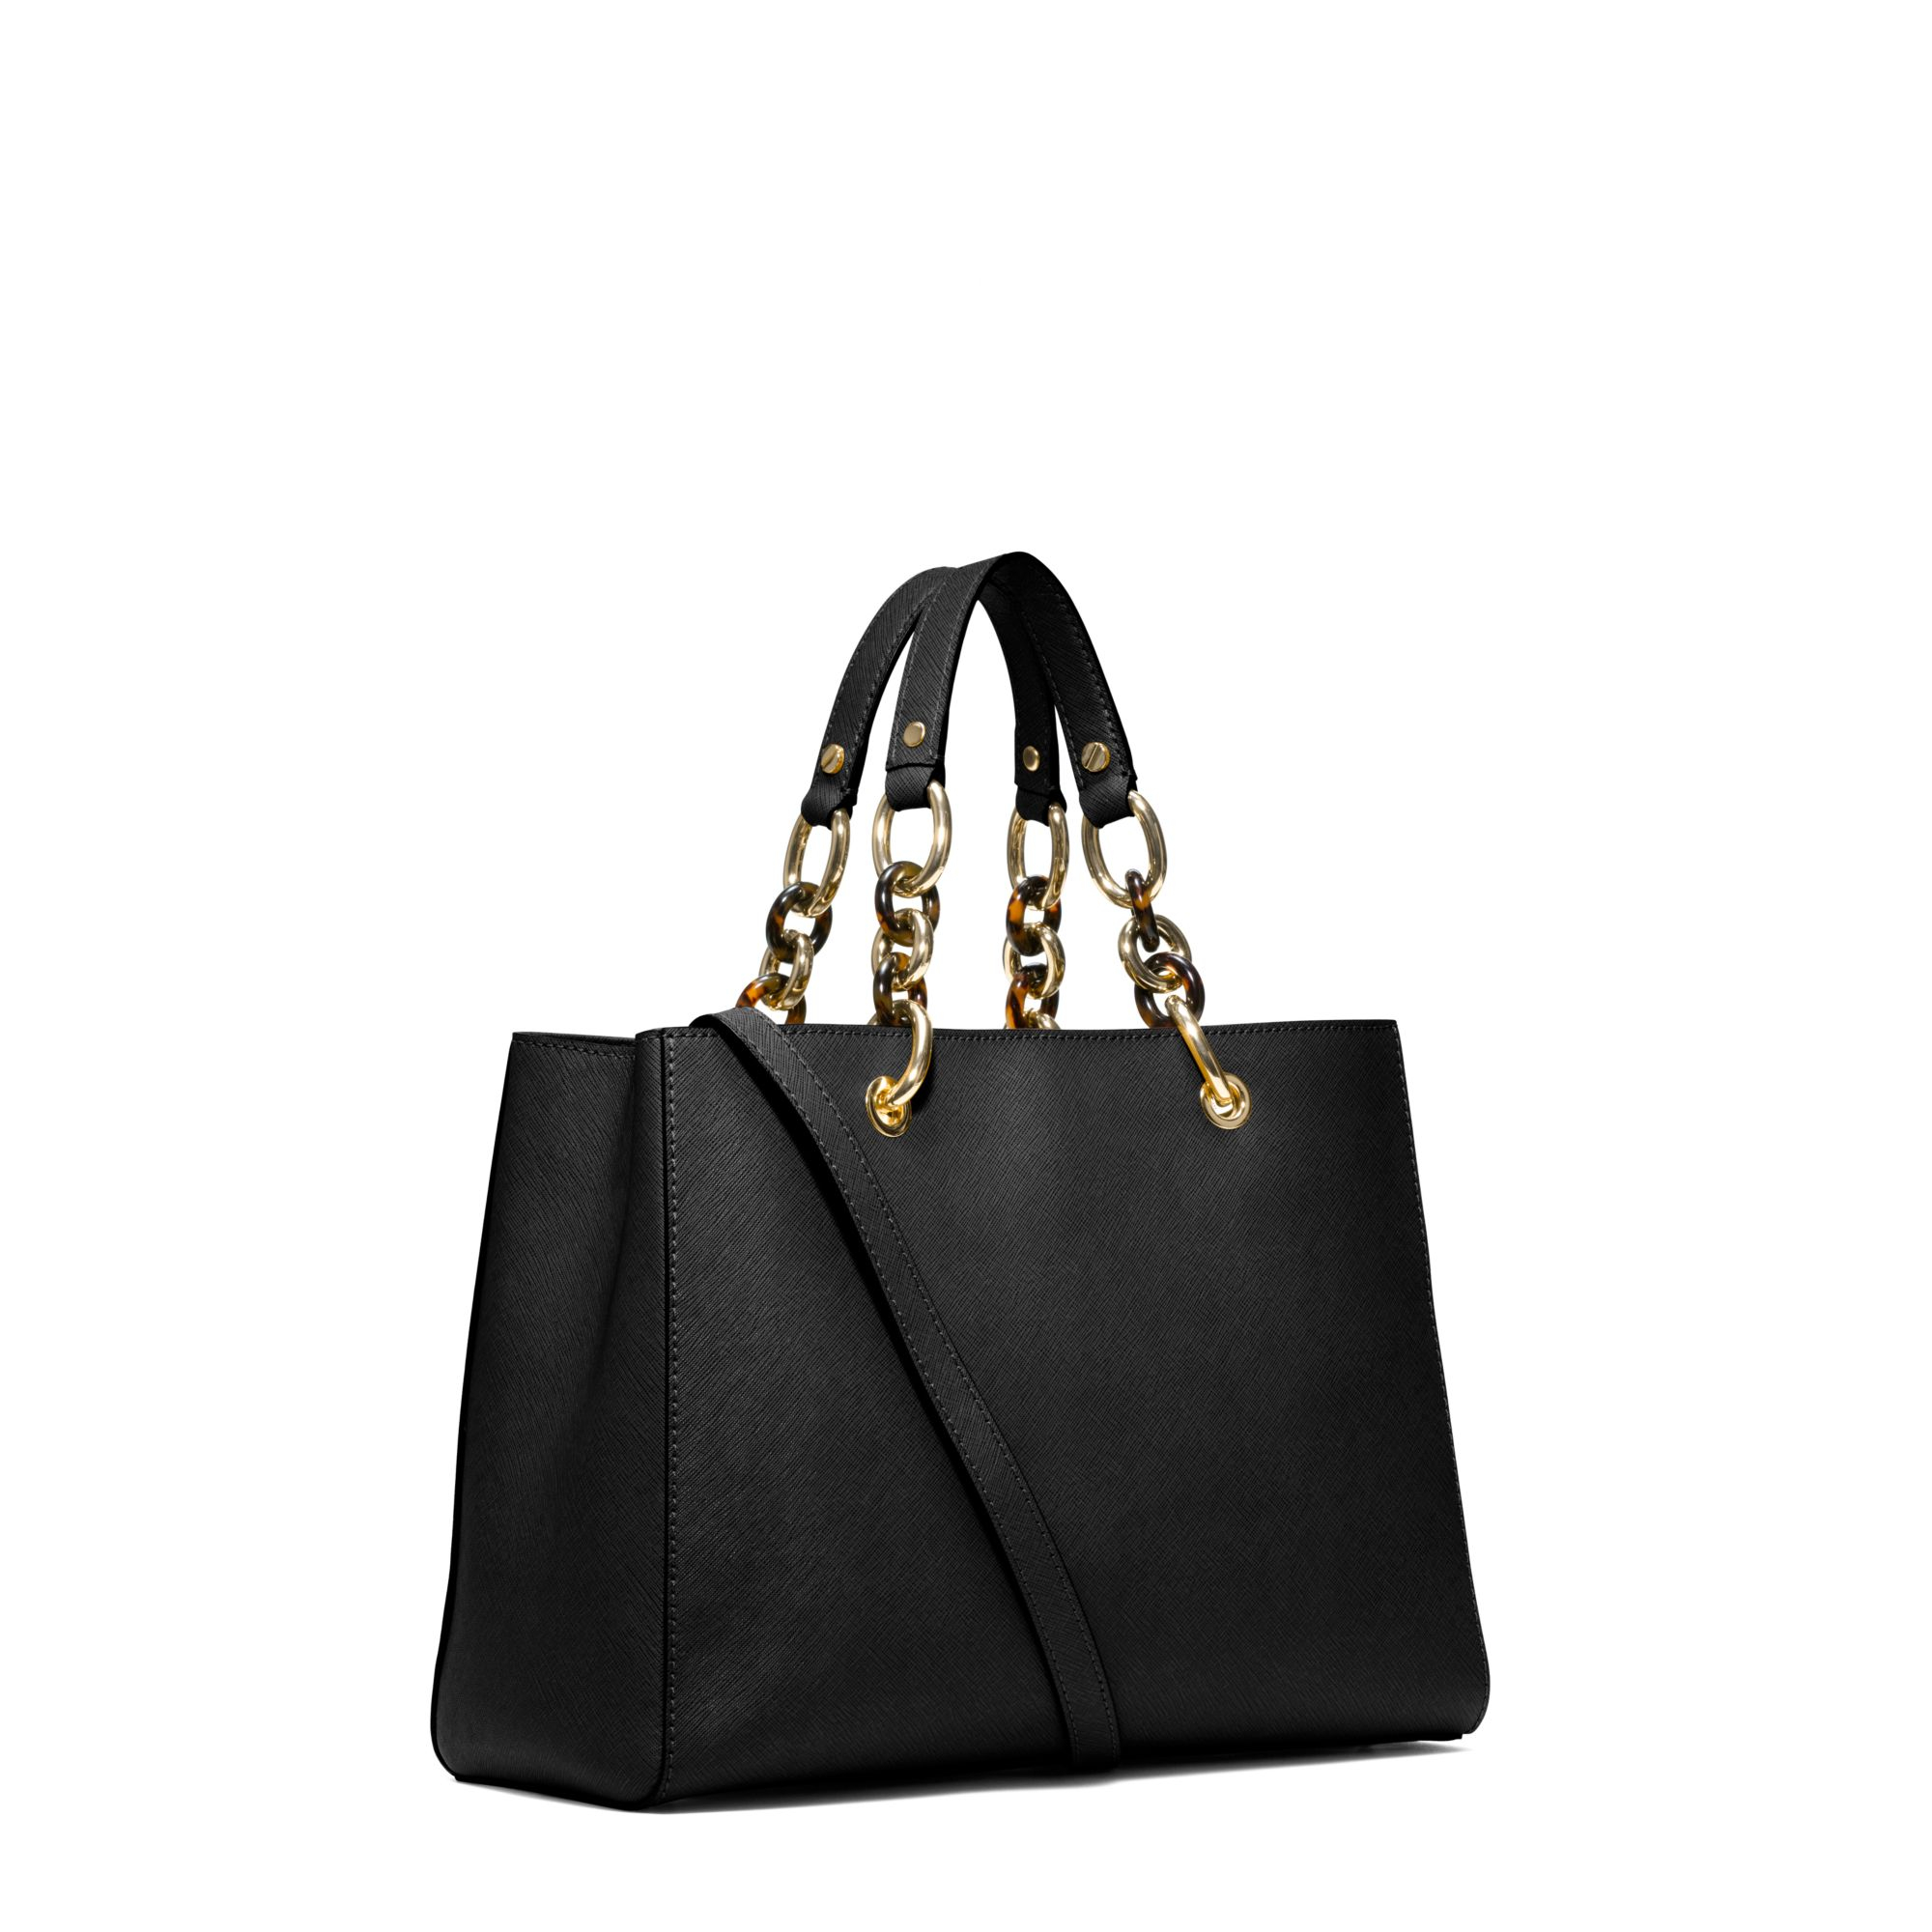 michael kors cynthia medium leather satchel in black lyst. Black Bedroom Furniture Sets. Home Design Ideas